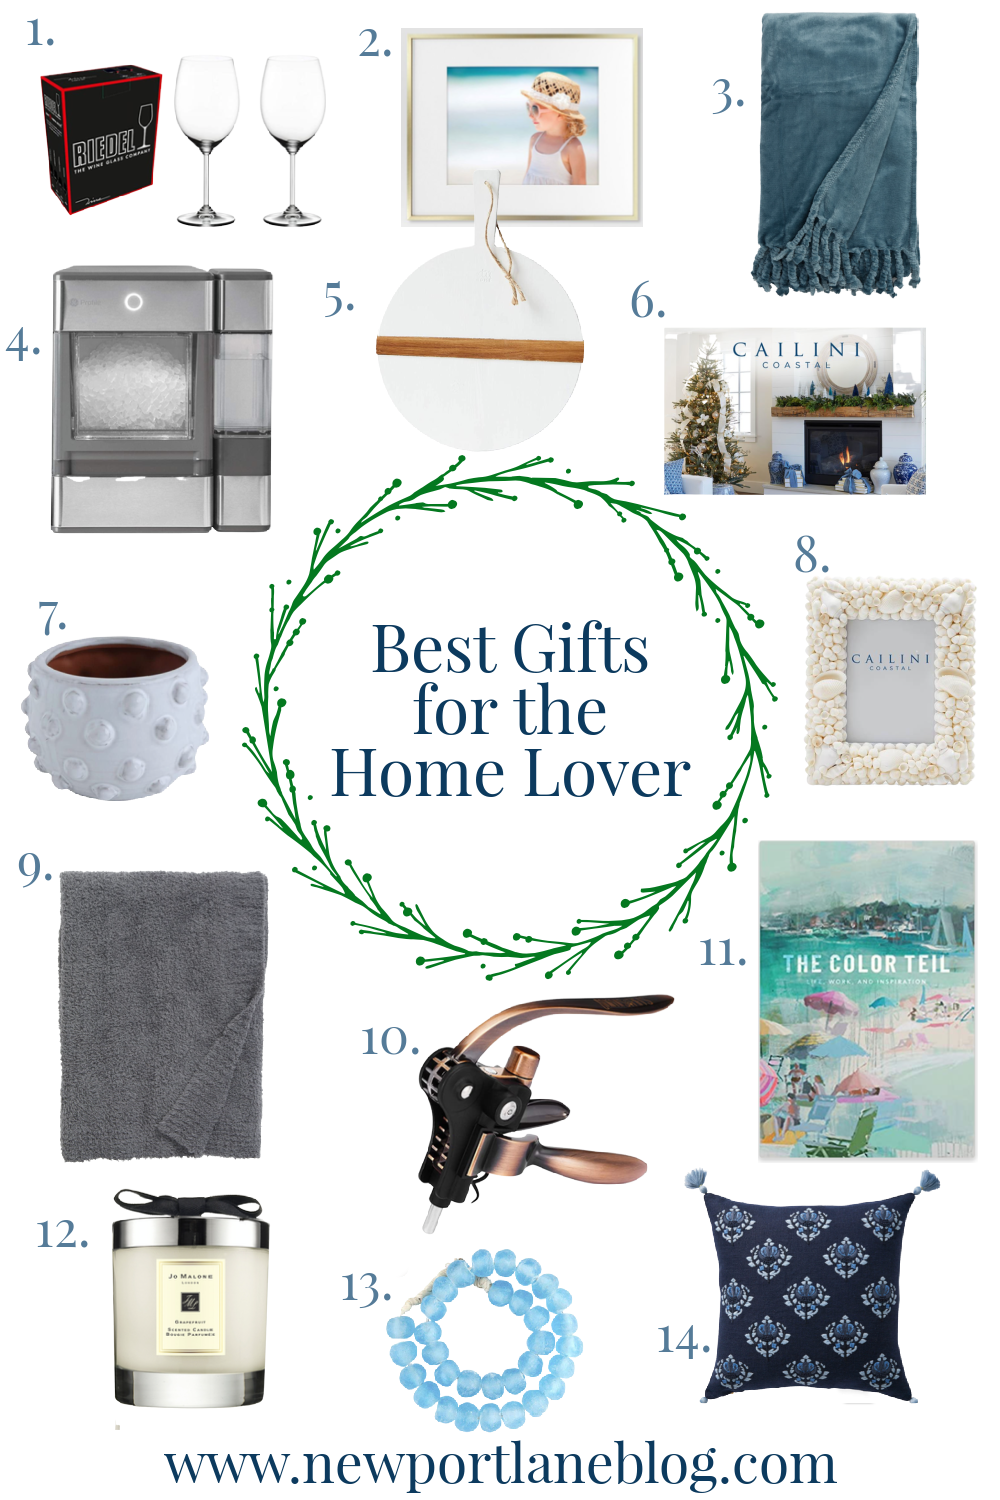 The ultimate guide for the best gifts for decor lovers!